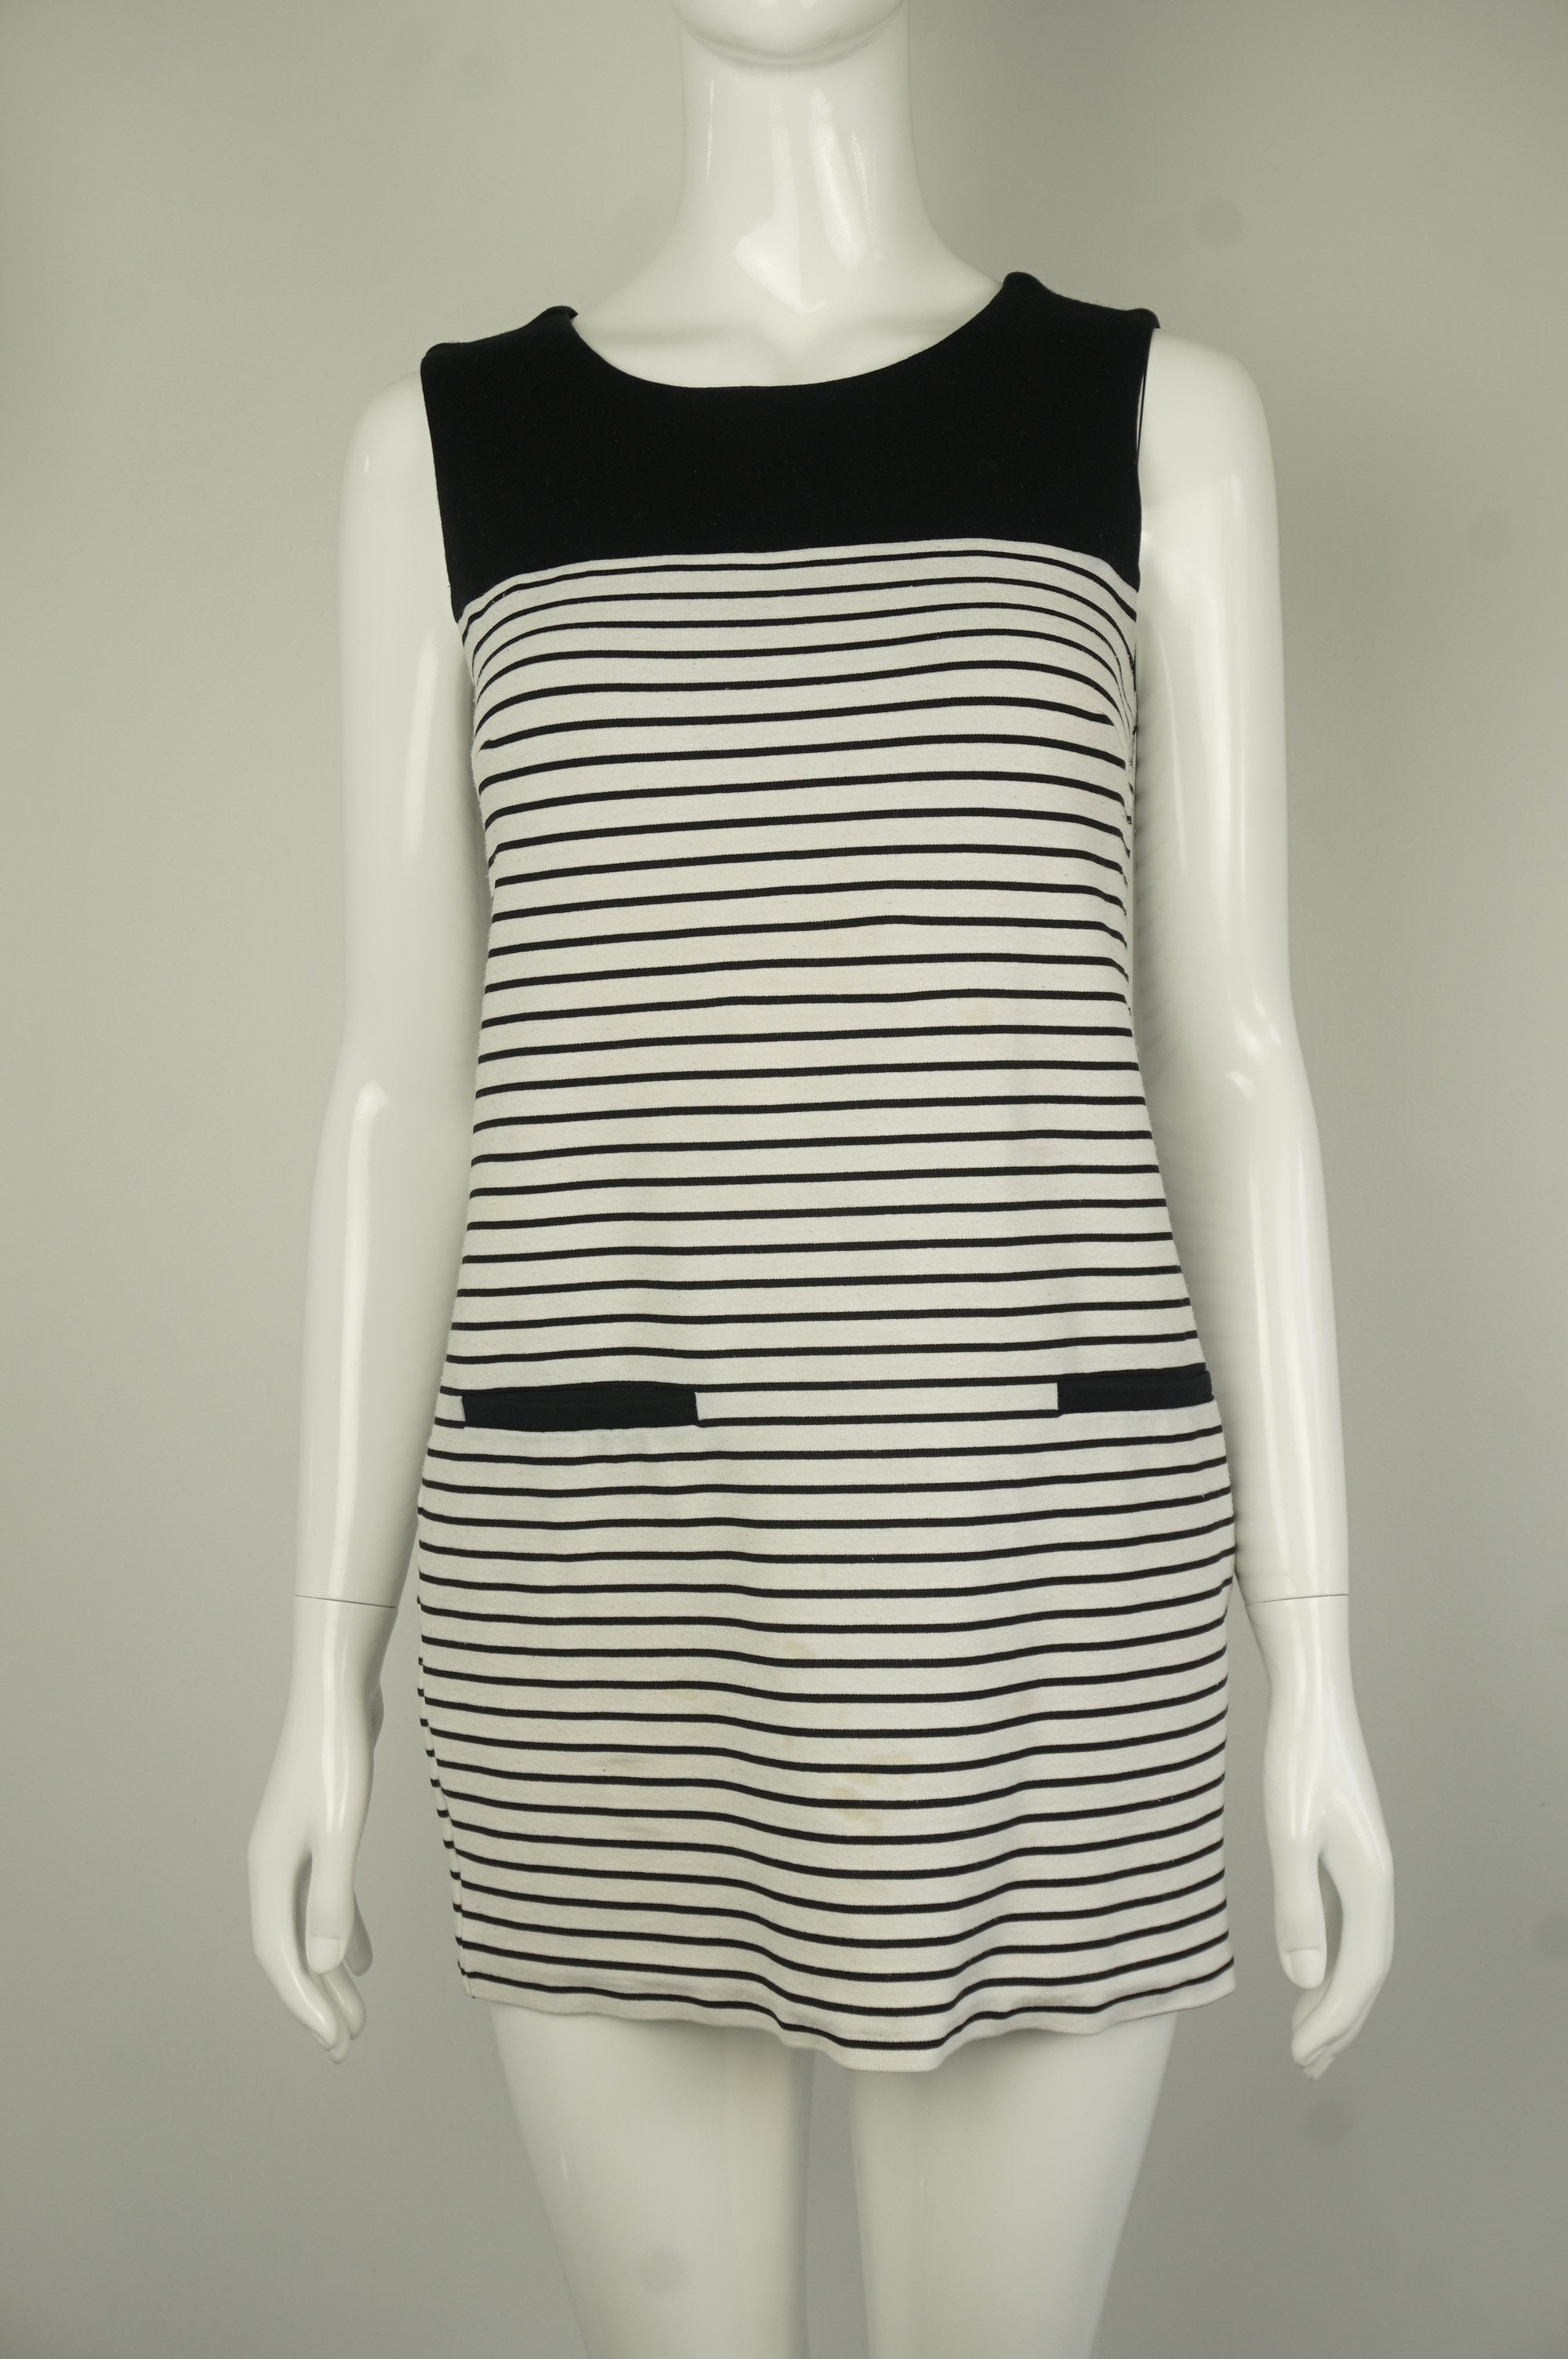 Love 21 Mini Straight Dress with Solid Black Top and Striped B&W bottom, Cute and comfy, this unique Black and White Striped Mini-Dress with Long Zipper in the back is perfect for outing  events and casual hangouts.  , Black, White, Cotton Fabric, women's Dresses & Rompers, women's Black, White Dresses & Rompers, Love 21 women's Dresses & Rompers, Simple Casual Black and White Women's Dress, Straight Cut Comfy Women's Dress, Women's Baseball Dress